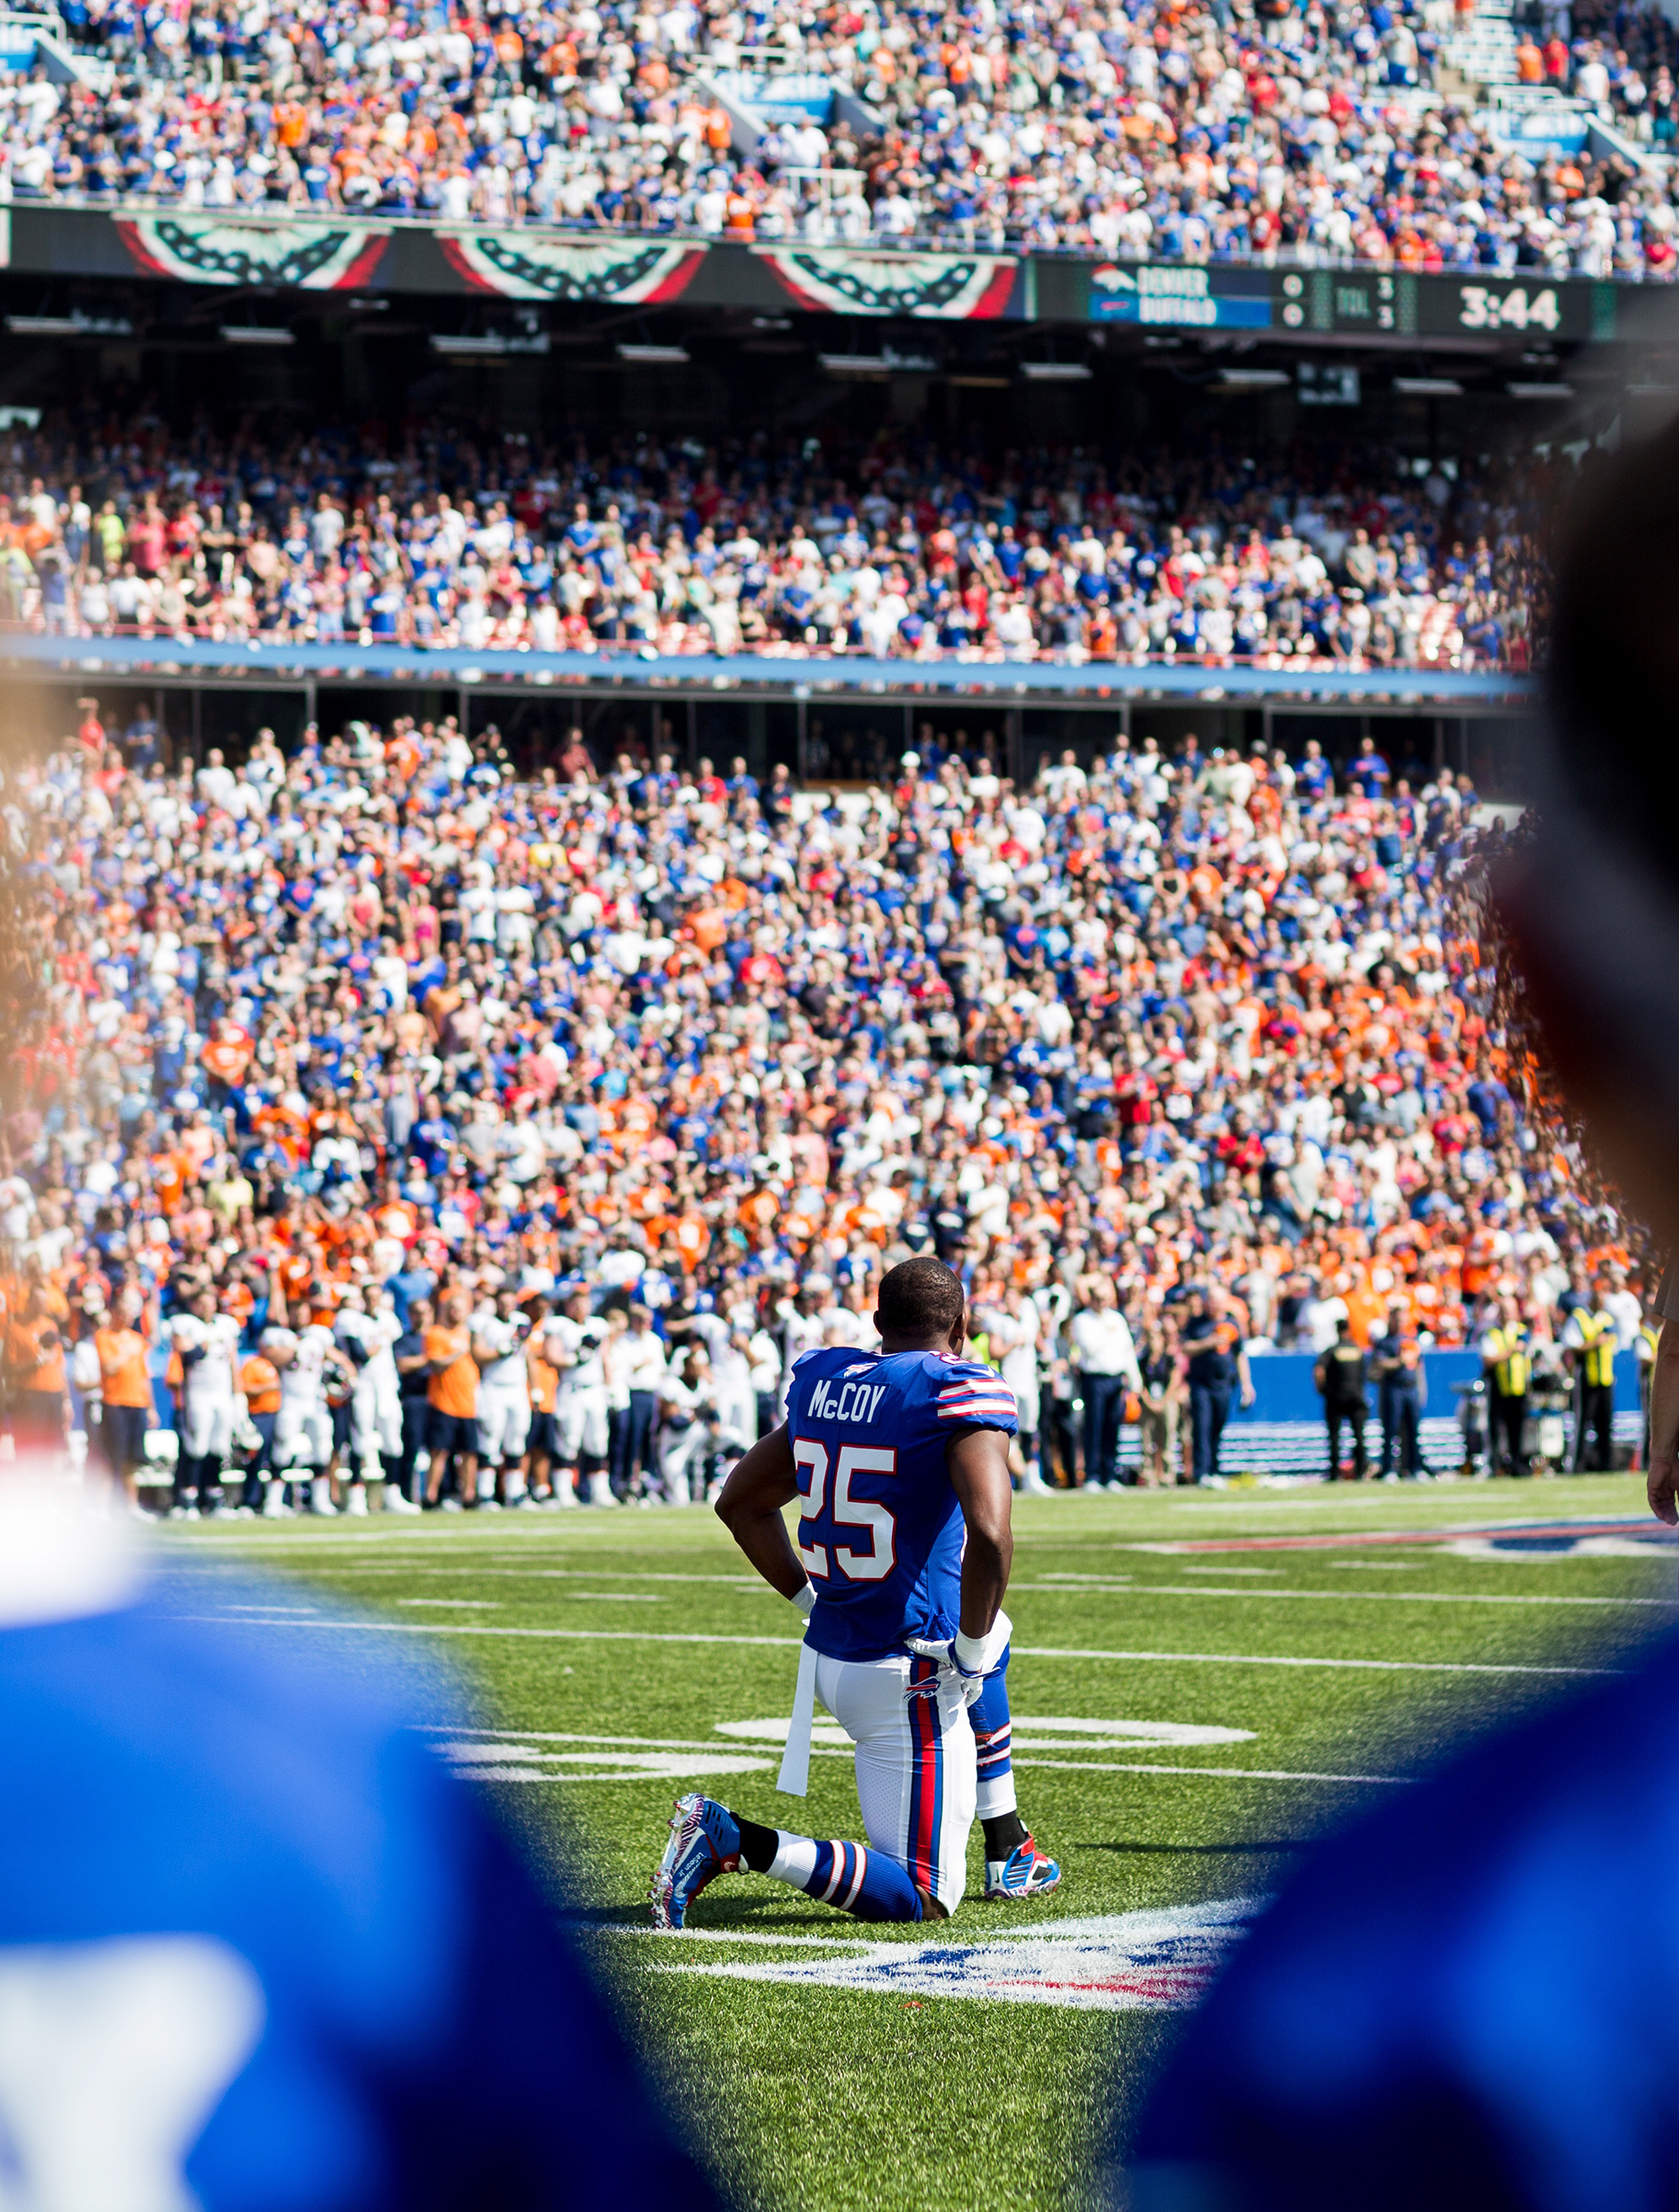 LeSean McCoy of the Buffalo Bills takes a knee during the national anthem before playing the Denver Broncos in Orchard Park, N.Y., on Sept. 24